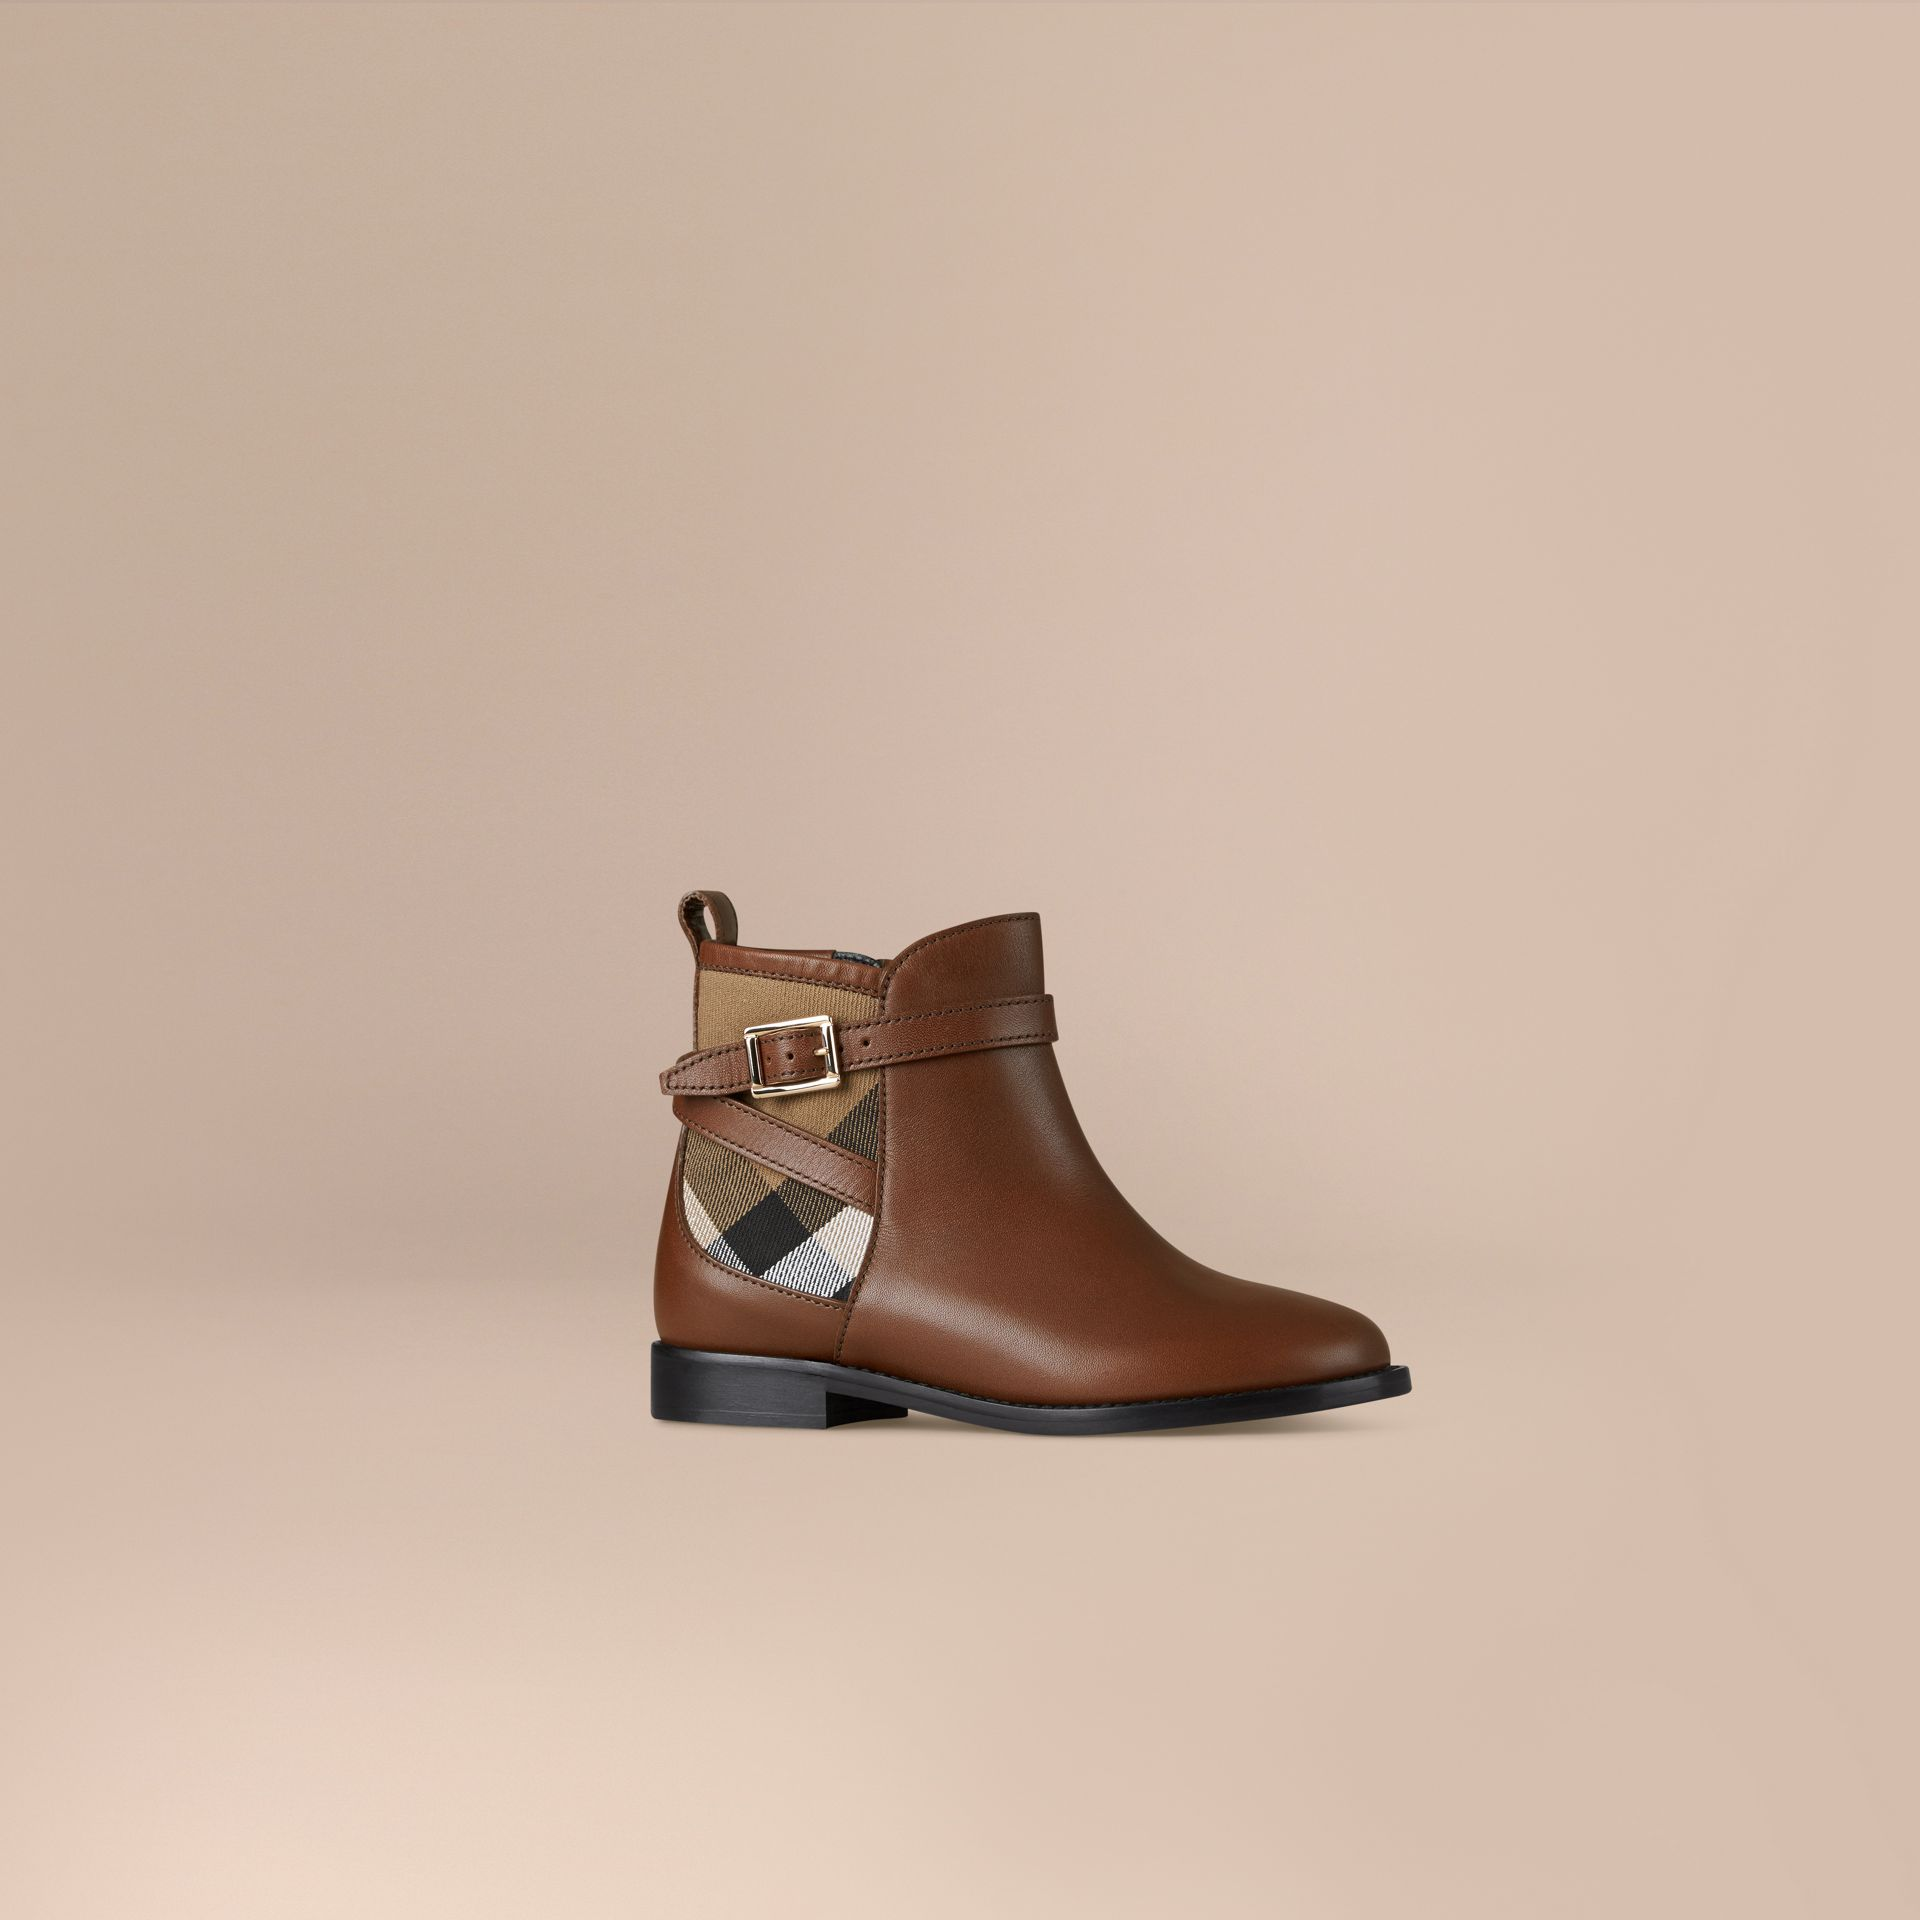 House Check Panel Leather Ankle Boots Chestnut - gallery image 1